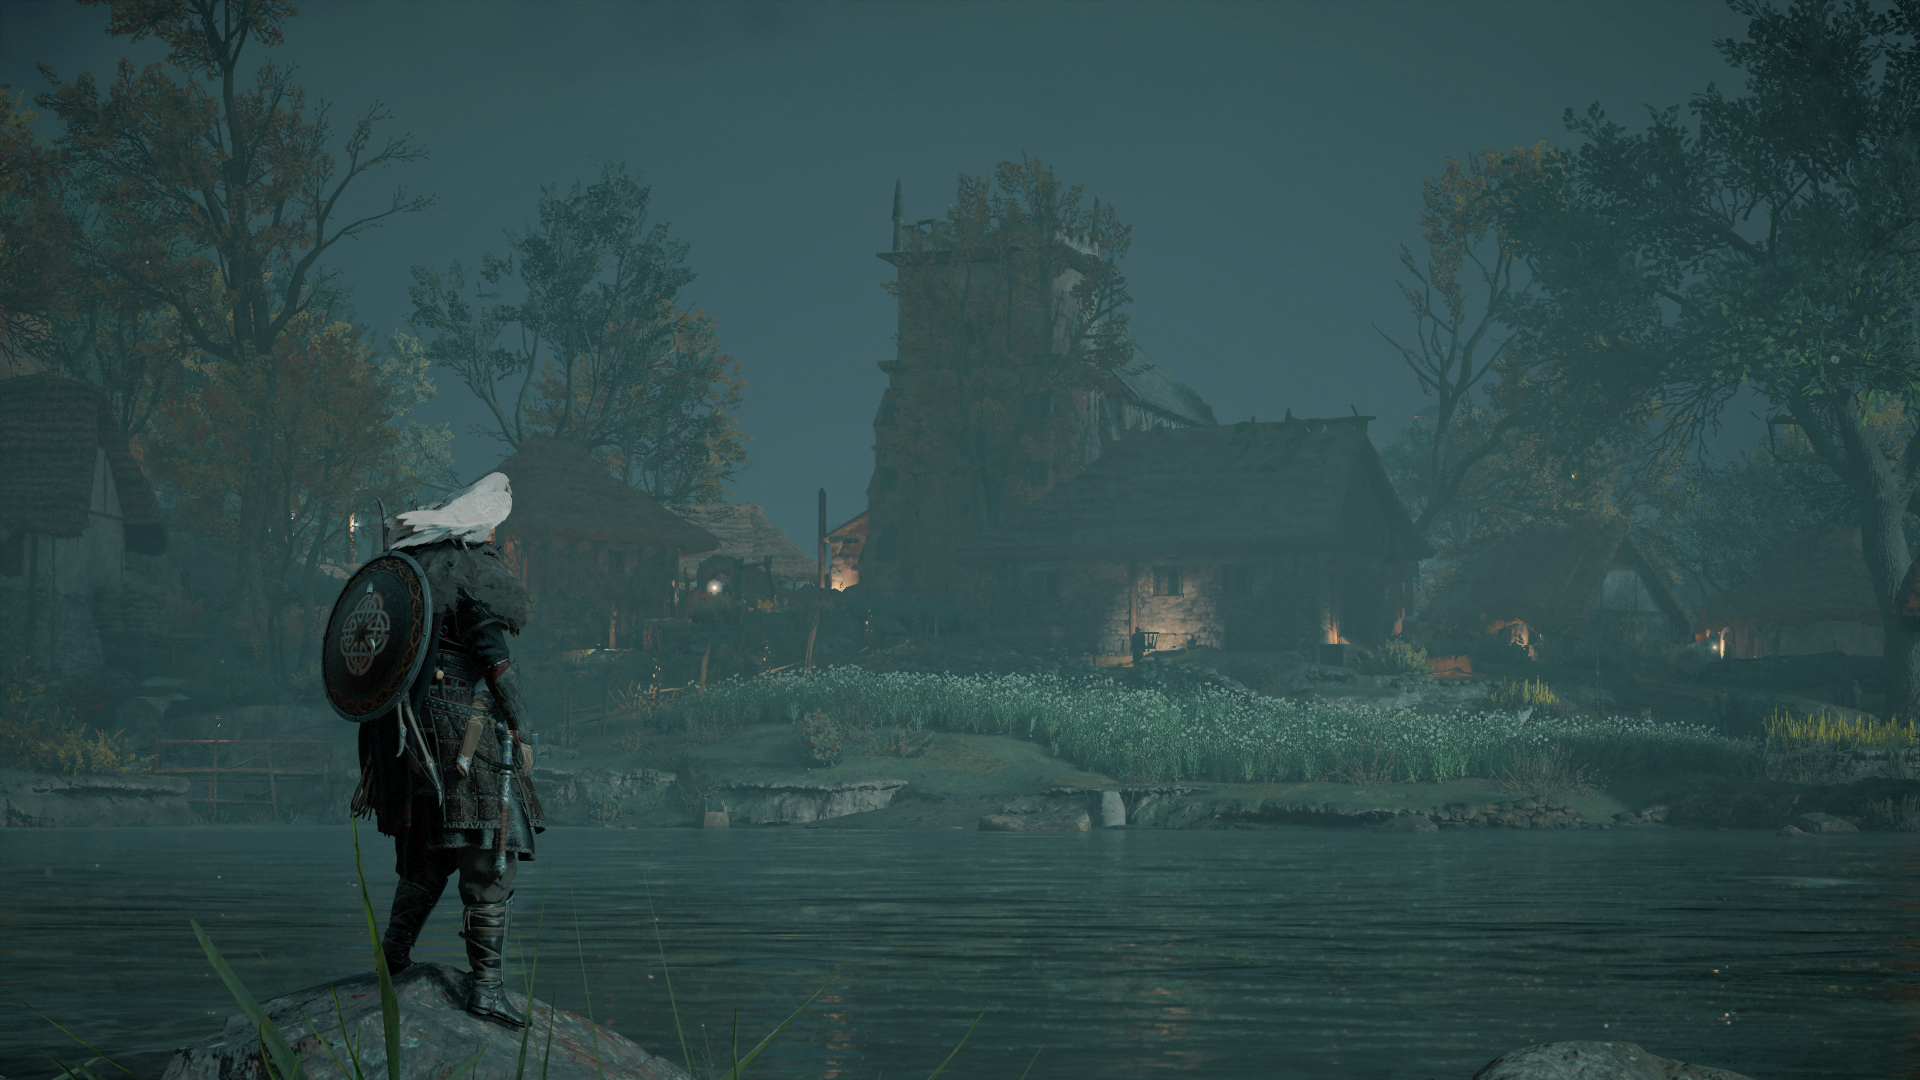 Assassin's Creed Valhalla guide: All Oxenefordscire Wealth, Mysteries, and Artifacts